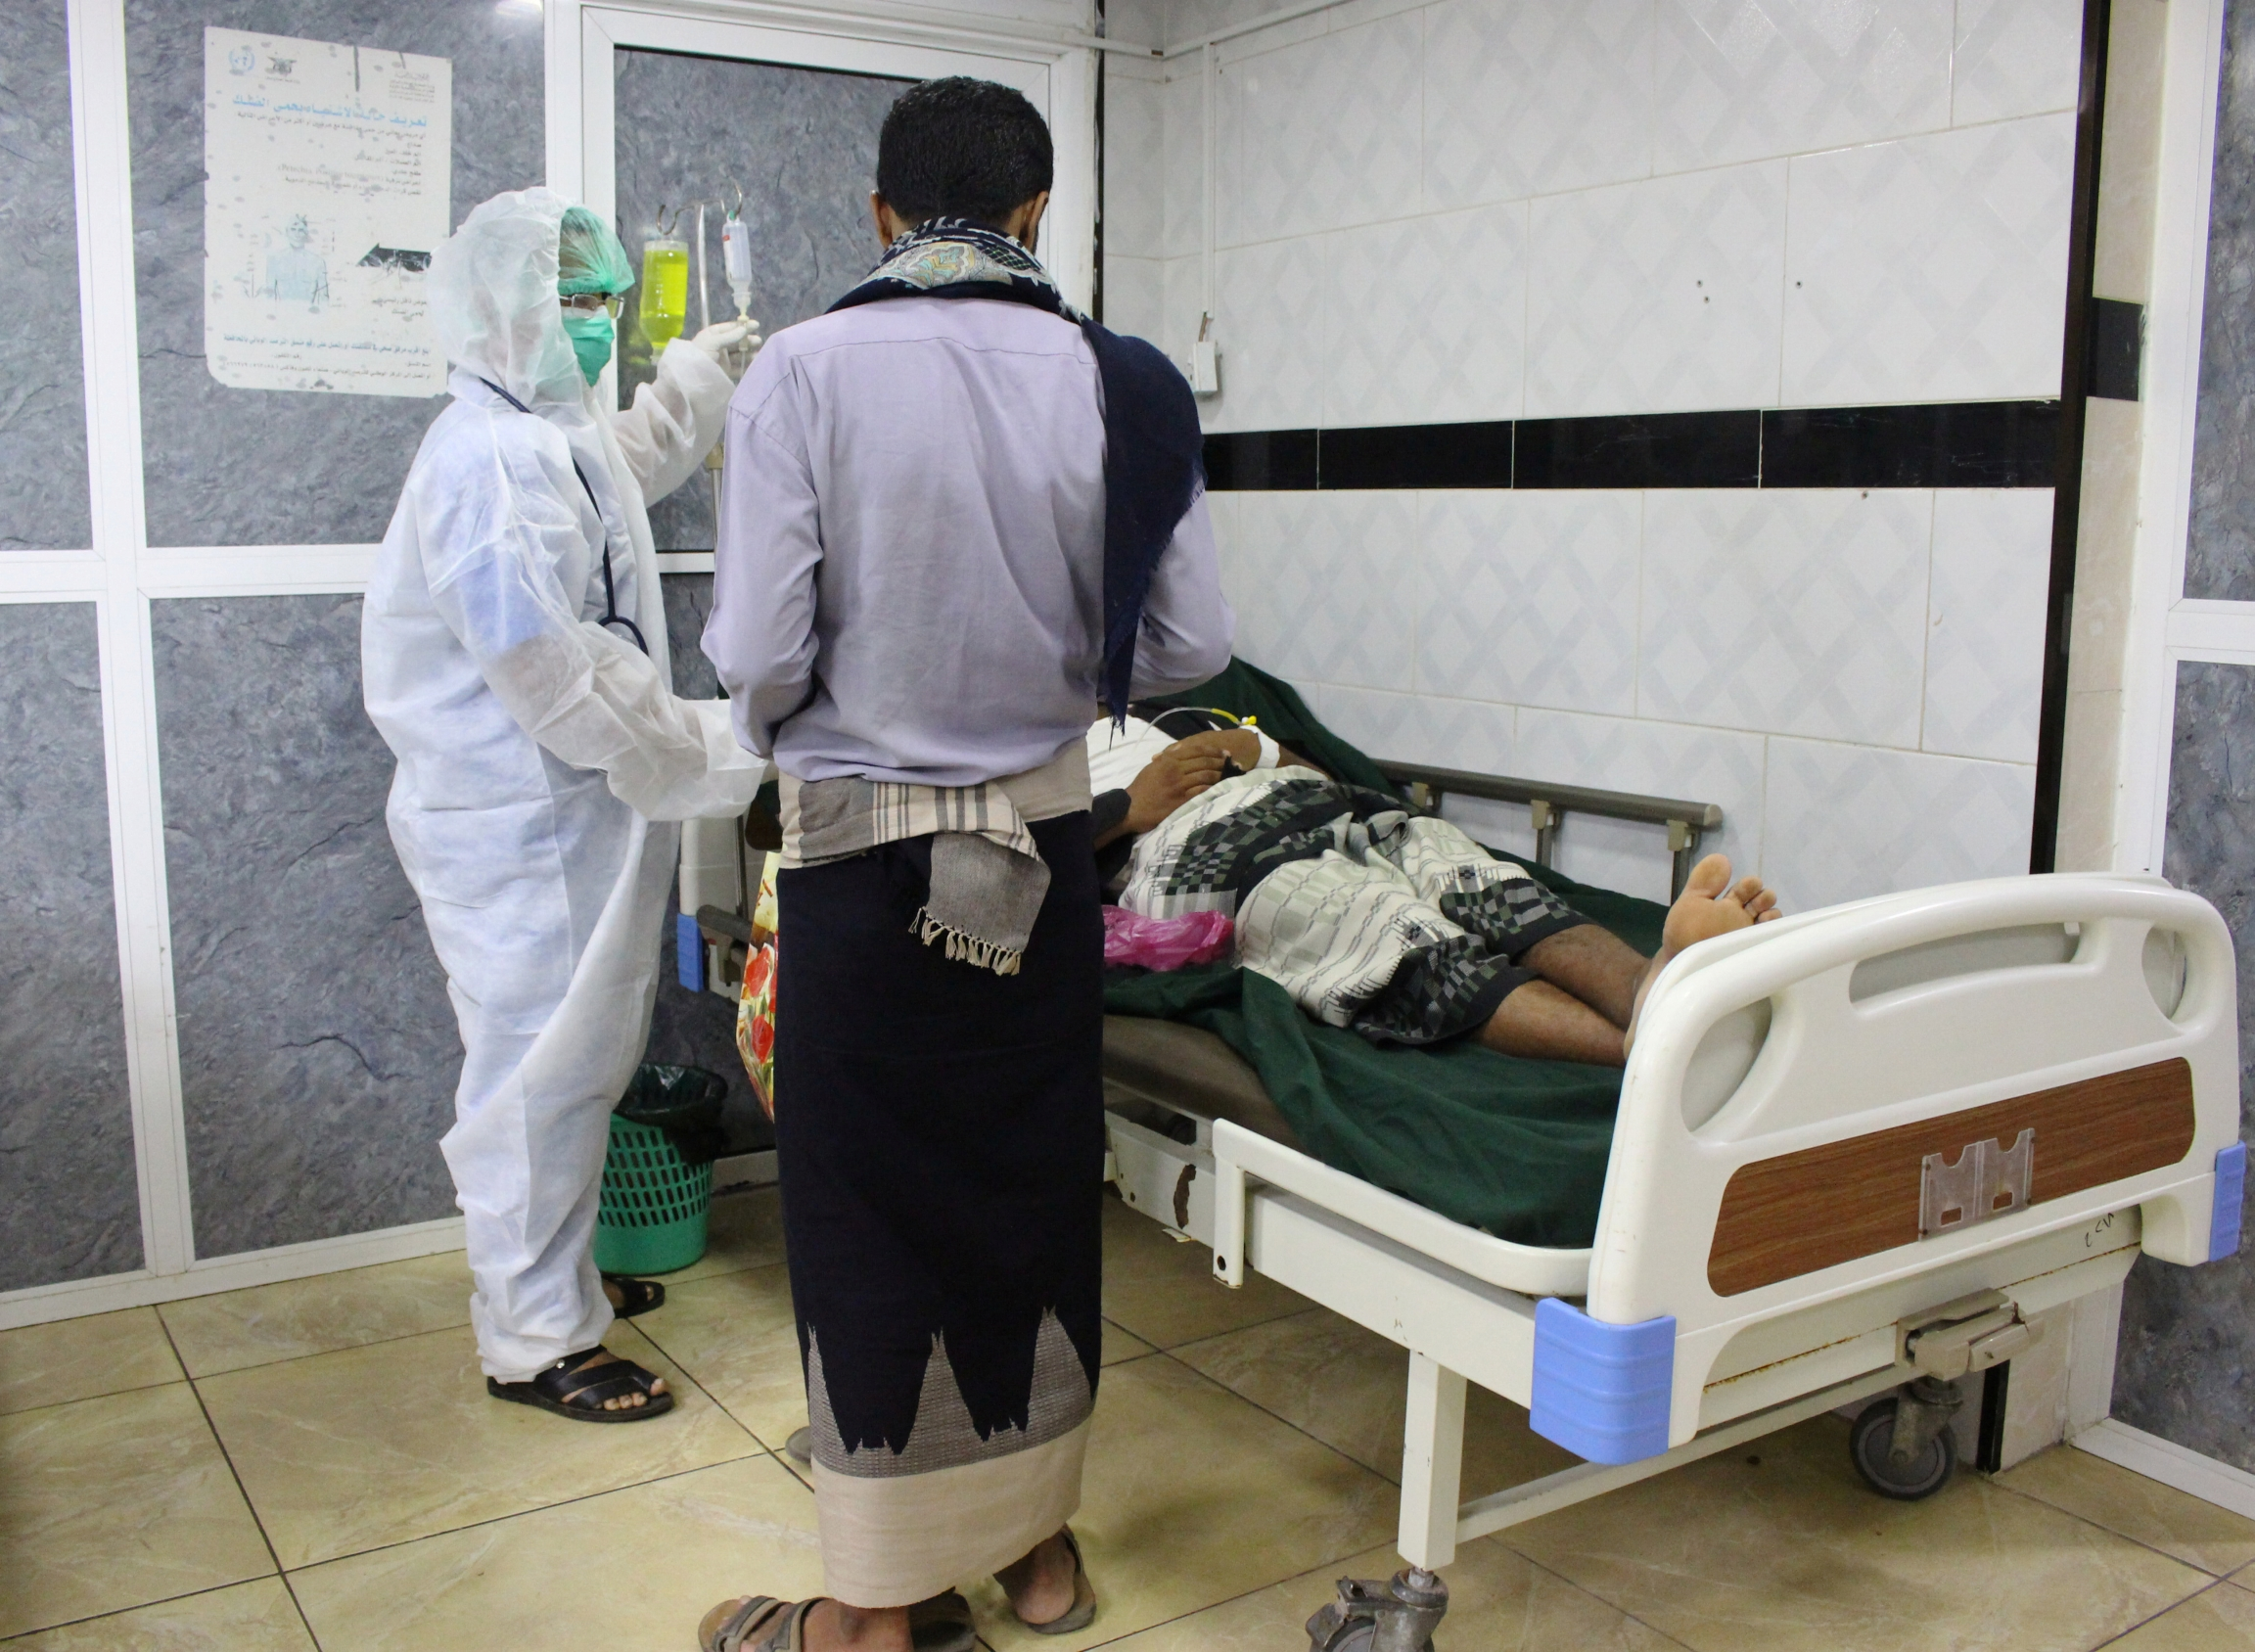 A medic wearing a protective suit attends to a patient at the emergency ward of a hospital amid concerns about the spread of the coronavirus disease, COVID-19, in Aden, Yemen